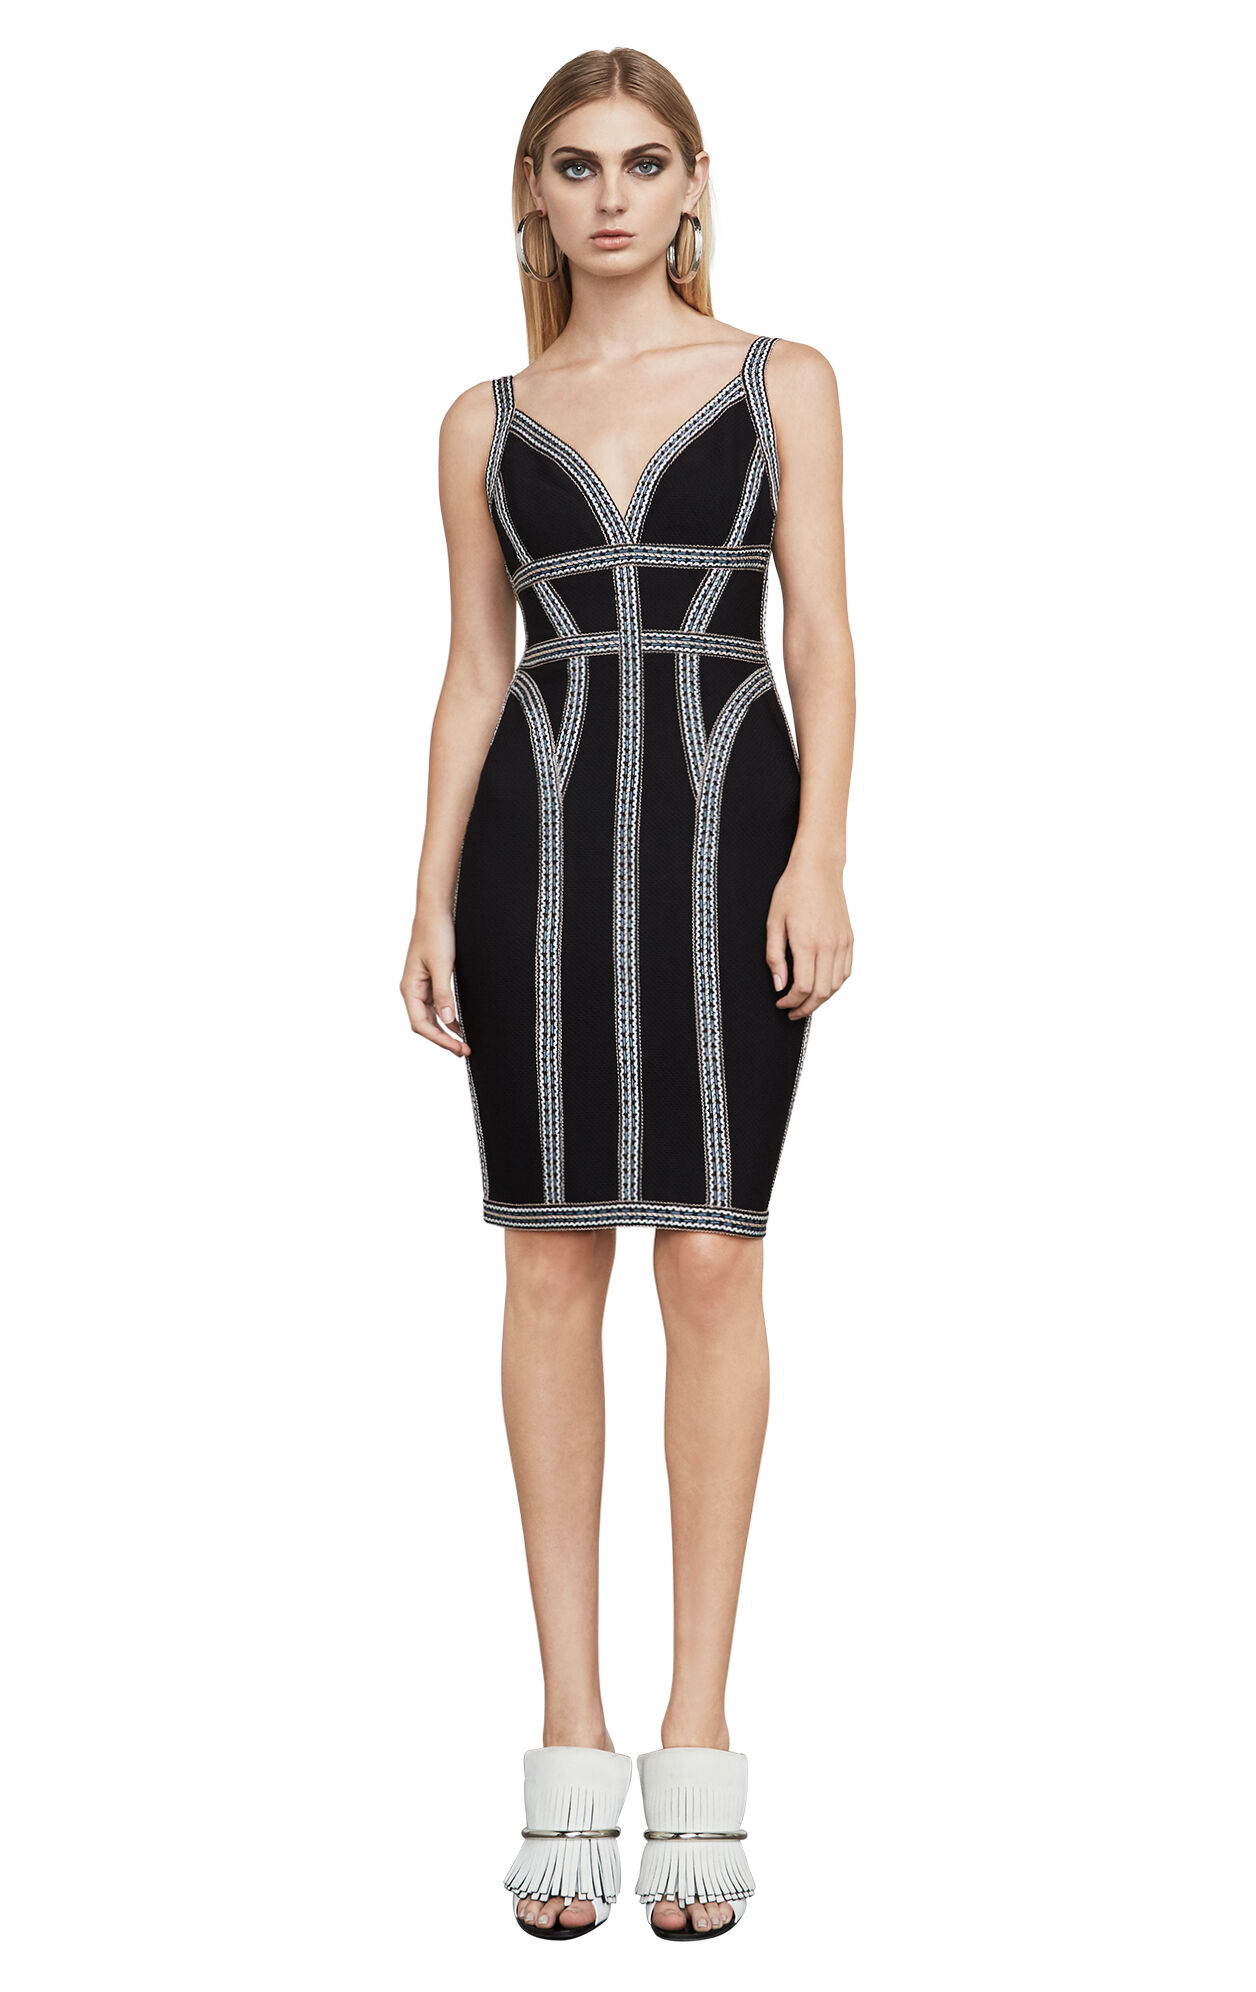 Zola Geometric Jacquard Bandage Dress